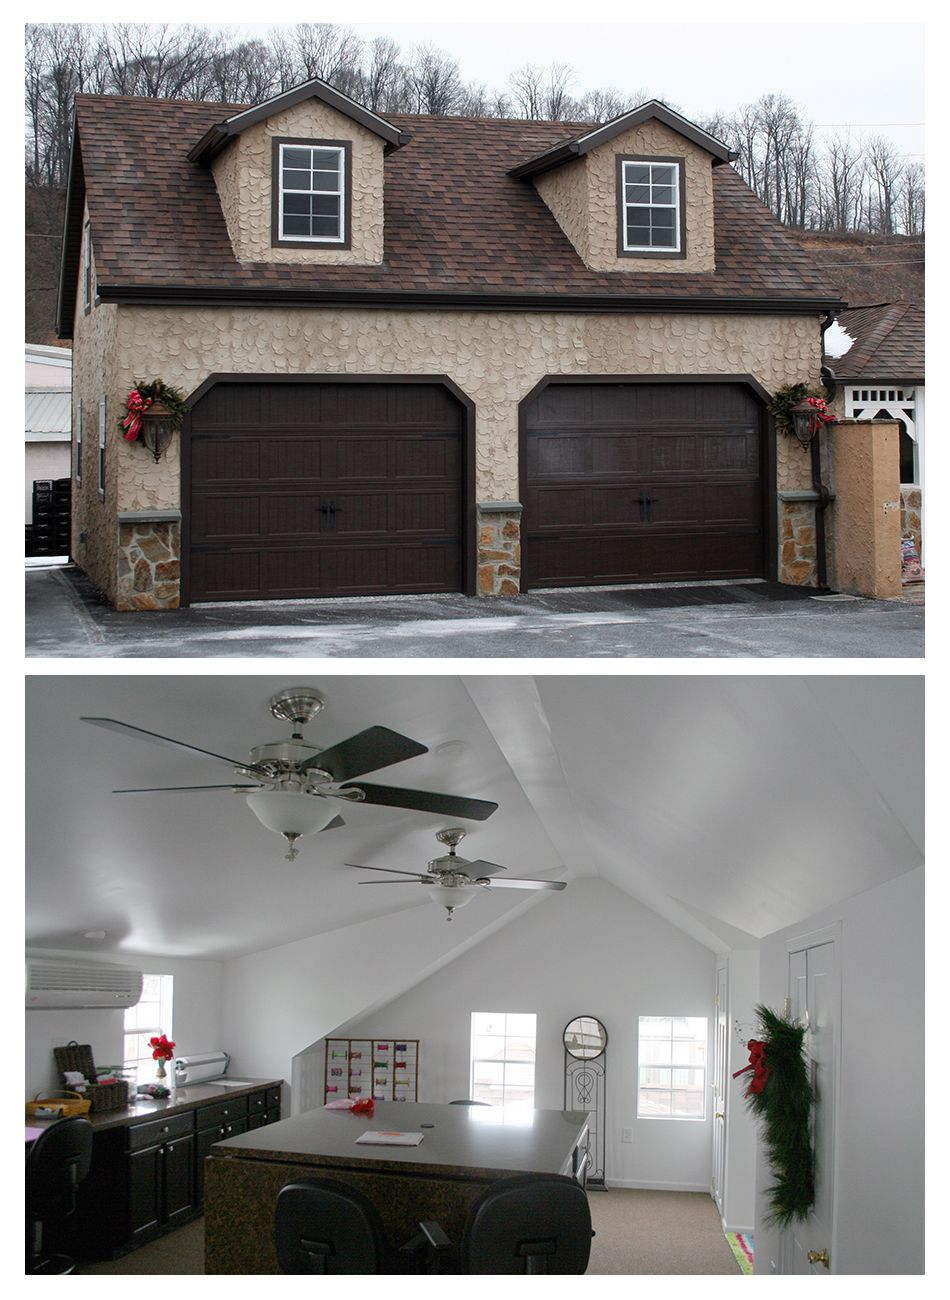 Horizon structures built this 24x24 2 story dormer garage for Stucco garage